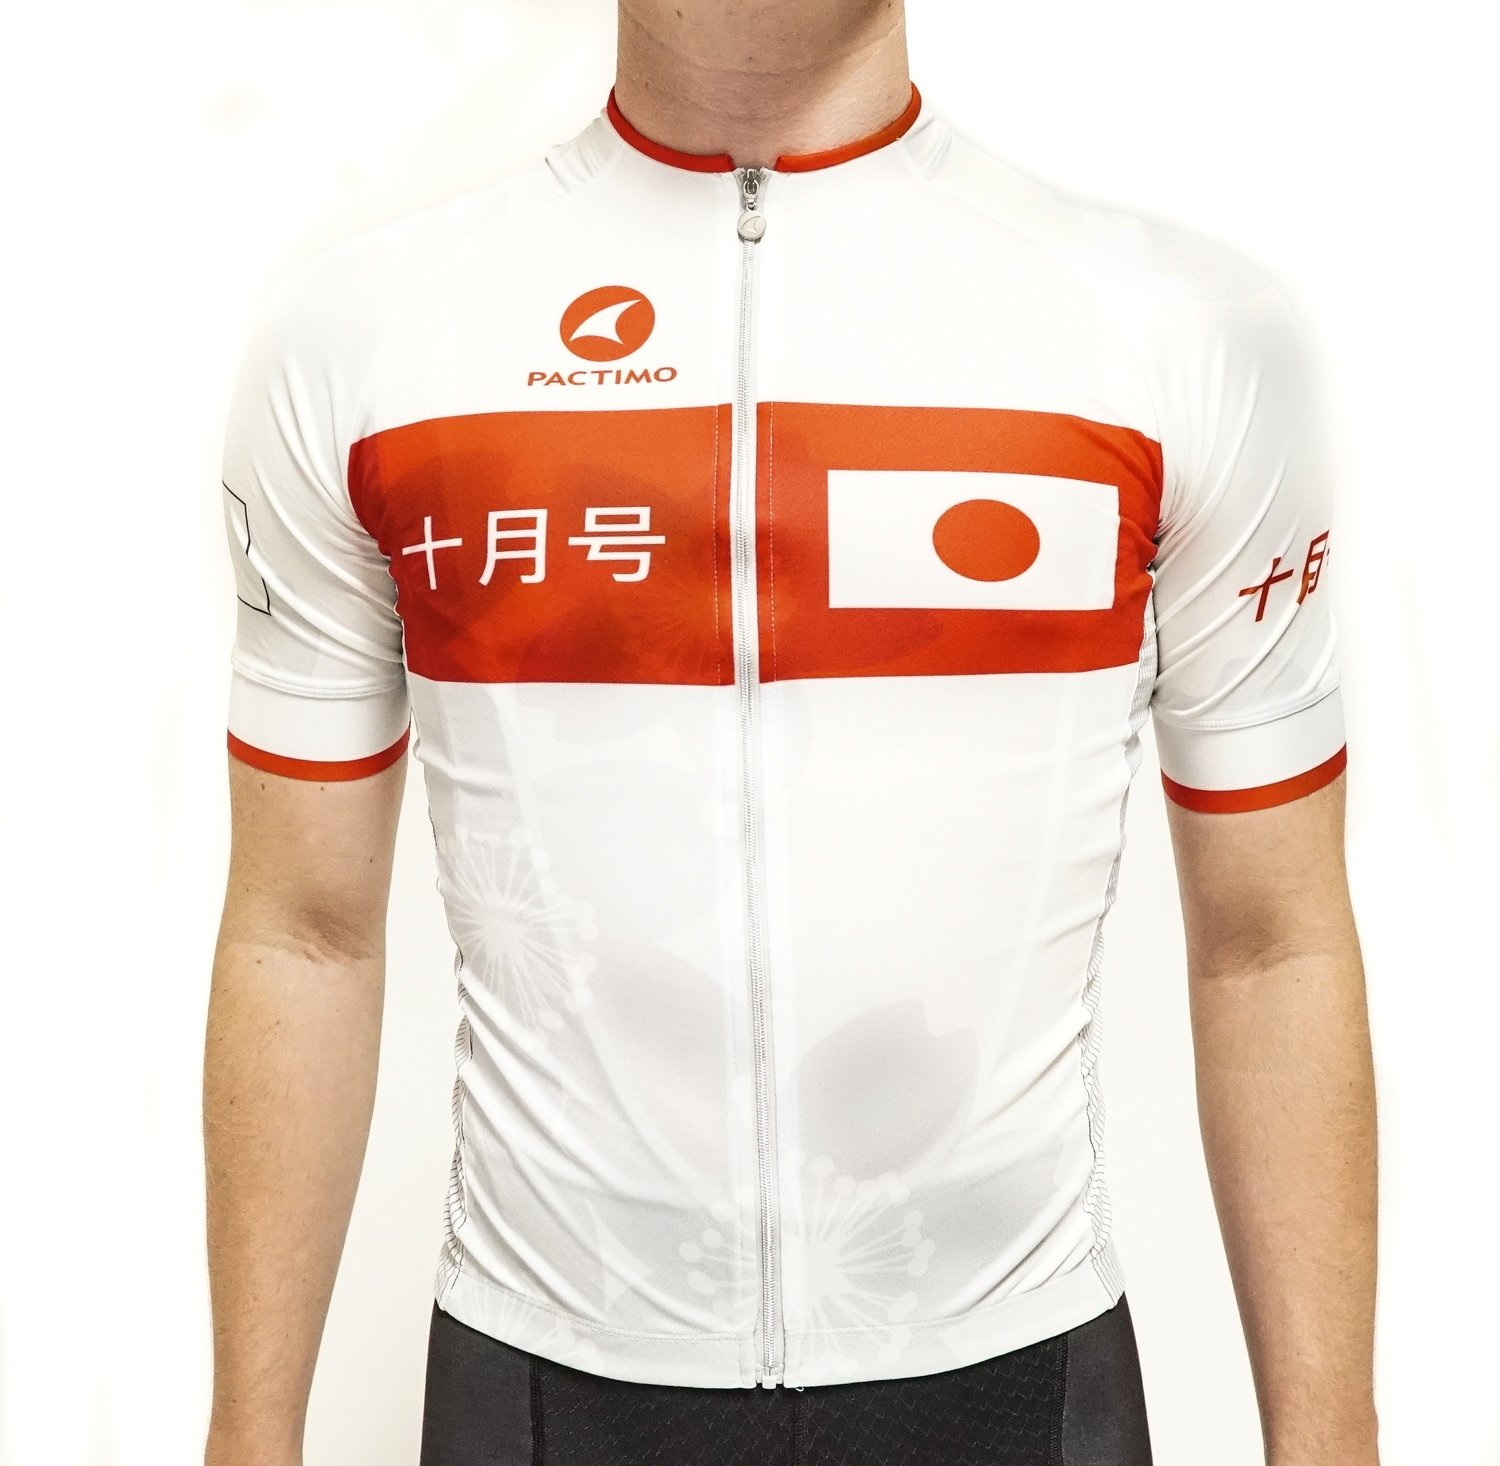 PELOTON/Pactimo Japan kit Super Sub